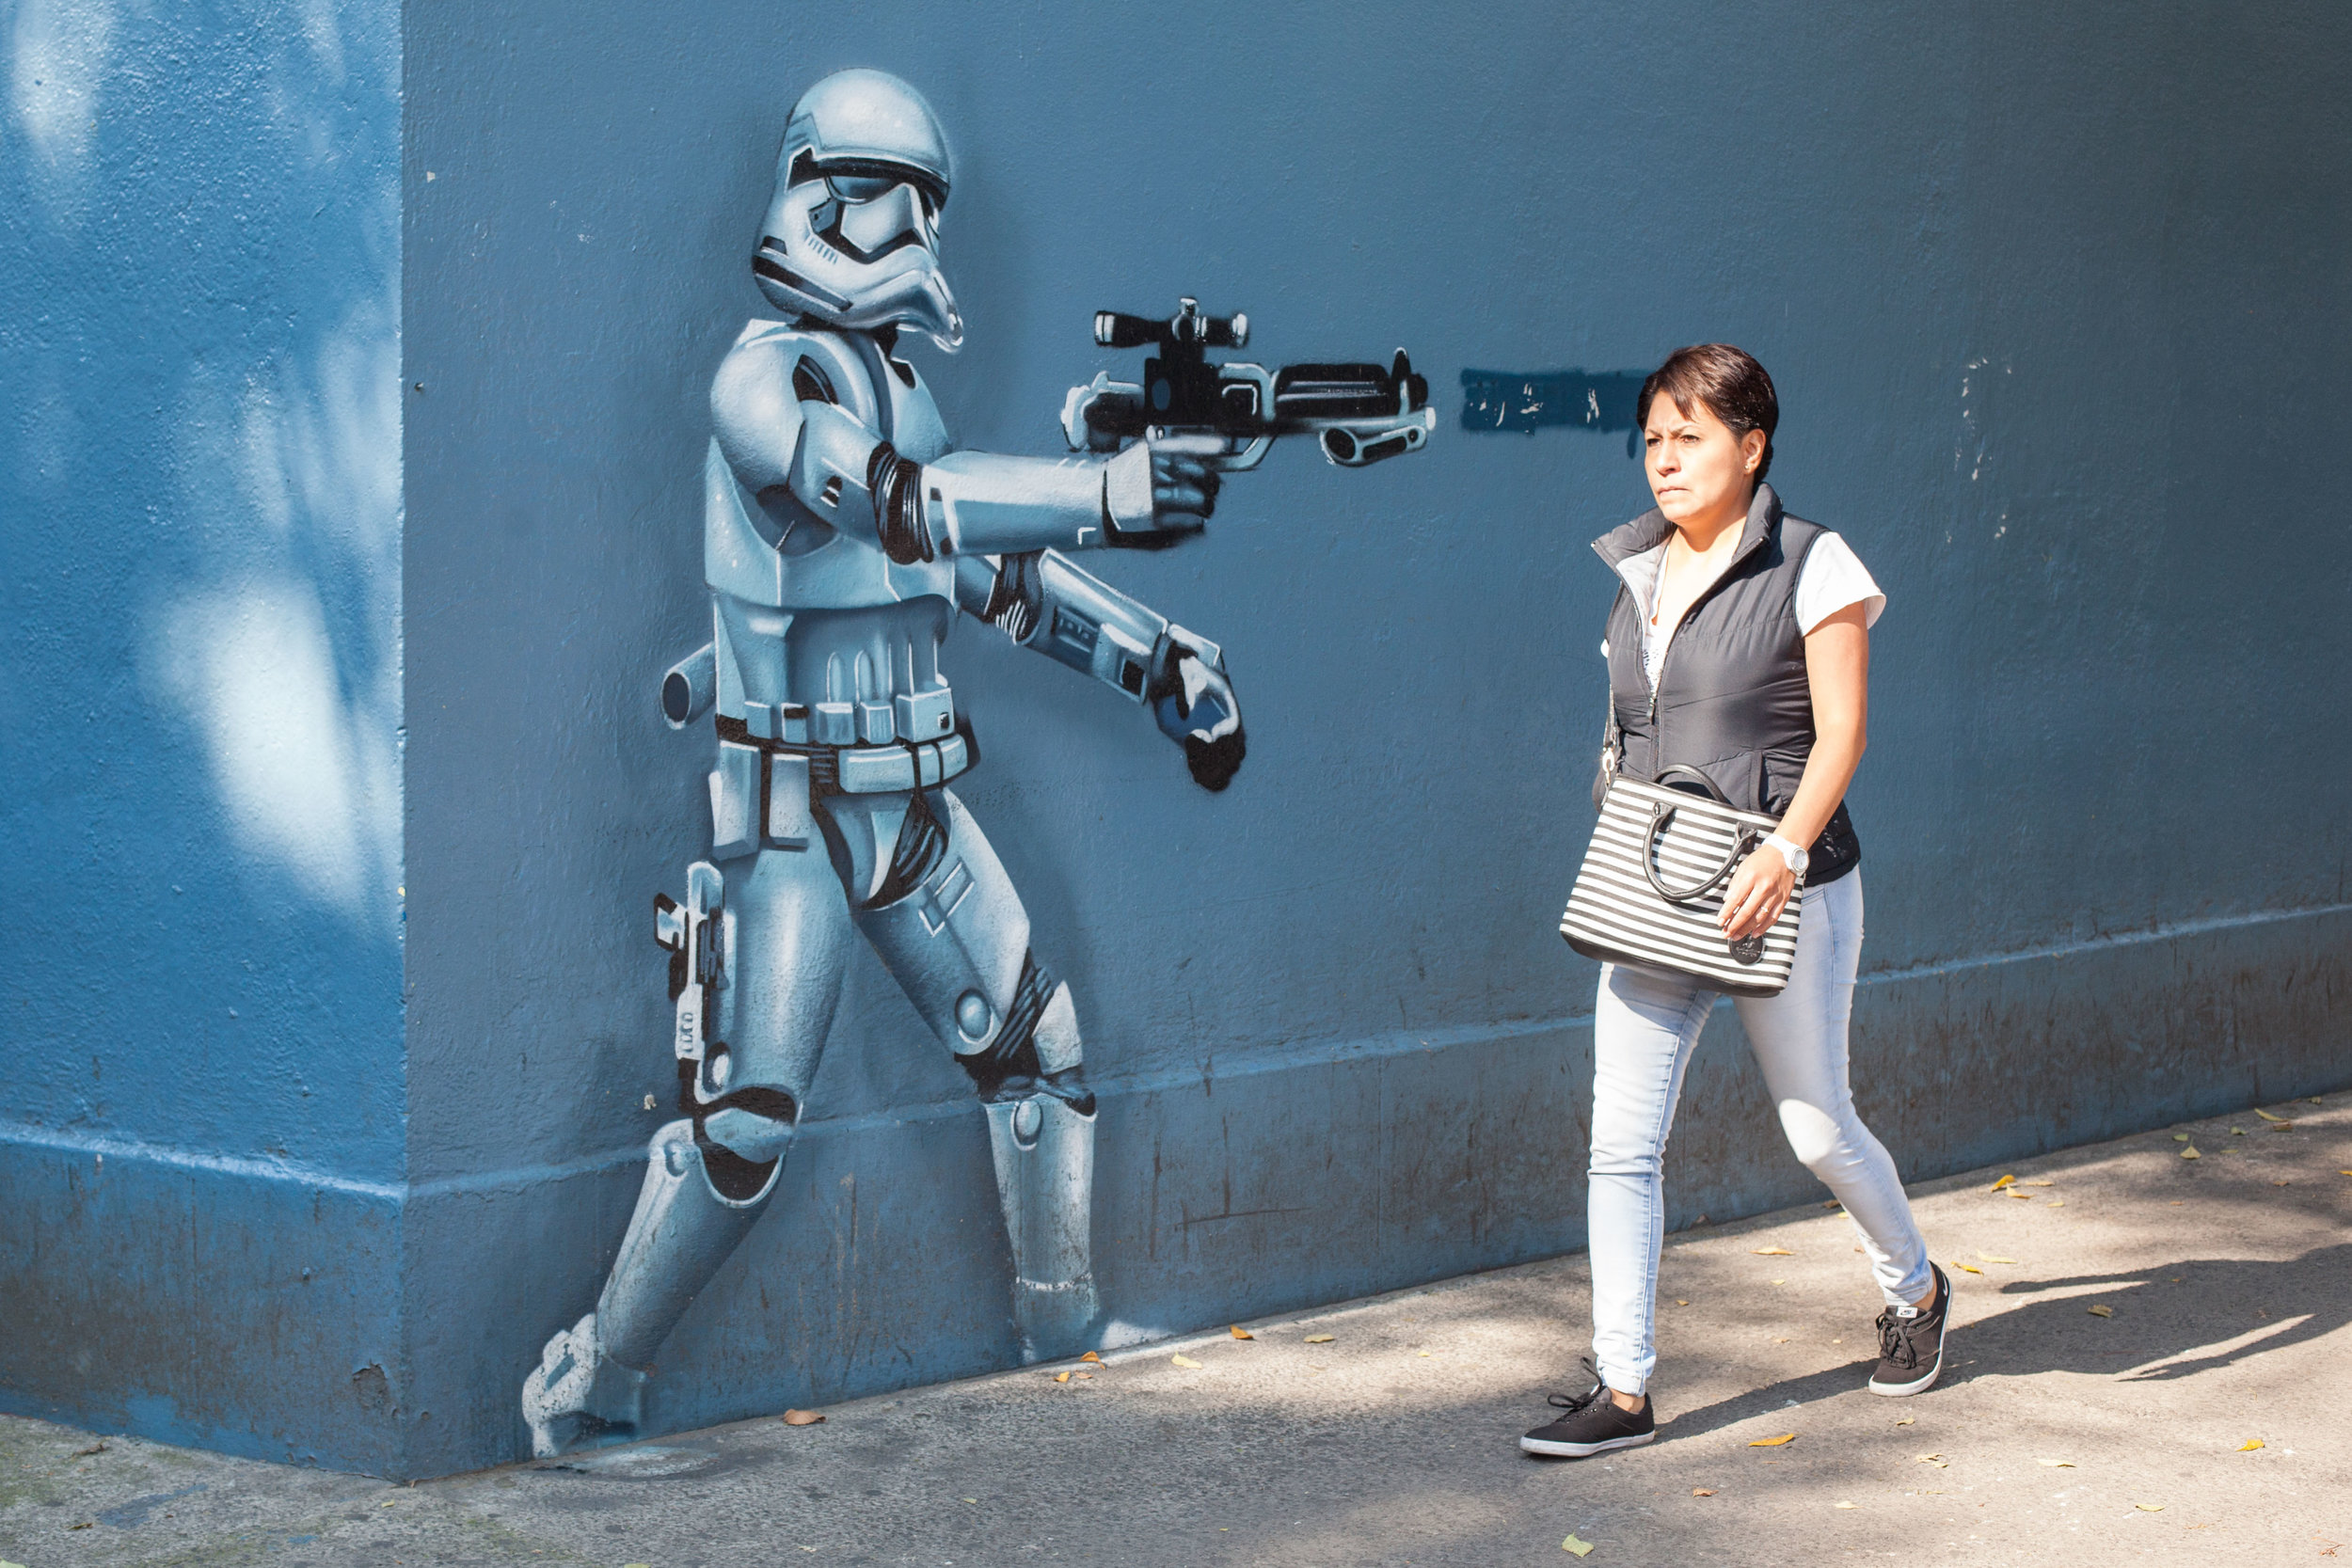 Star Wars Street Art in Condessa, Mexico City.